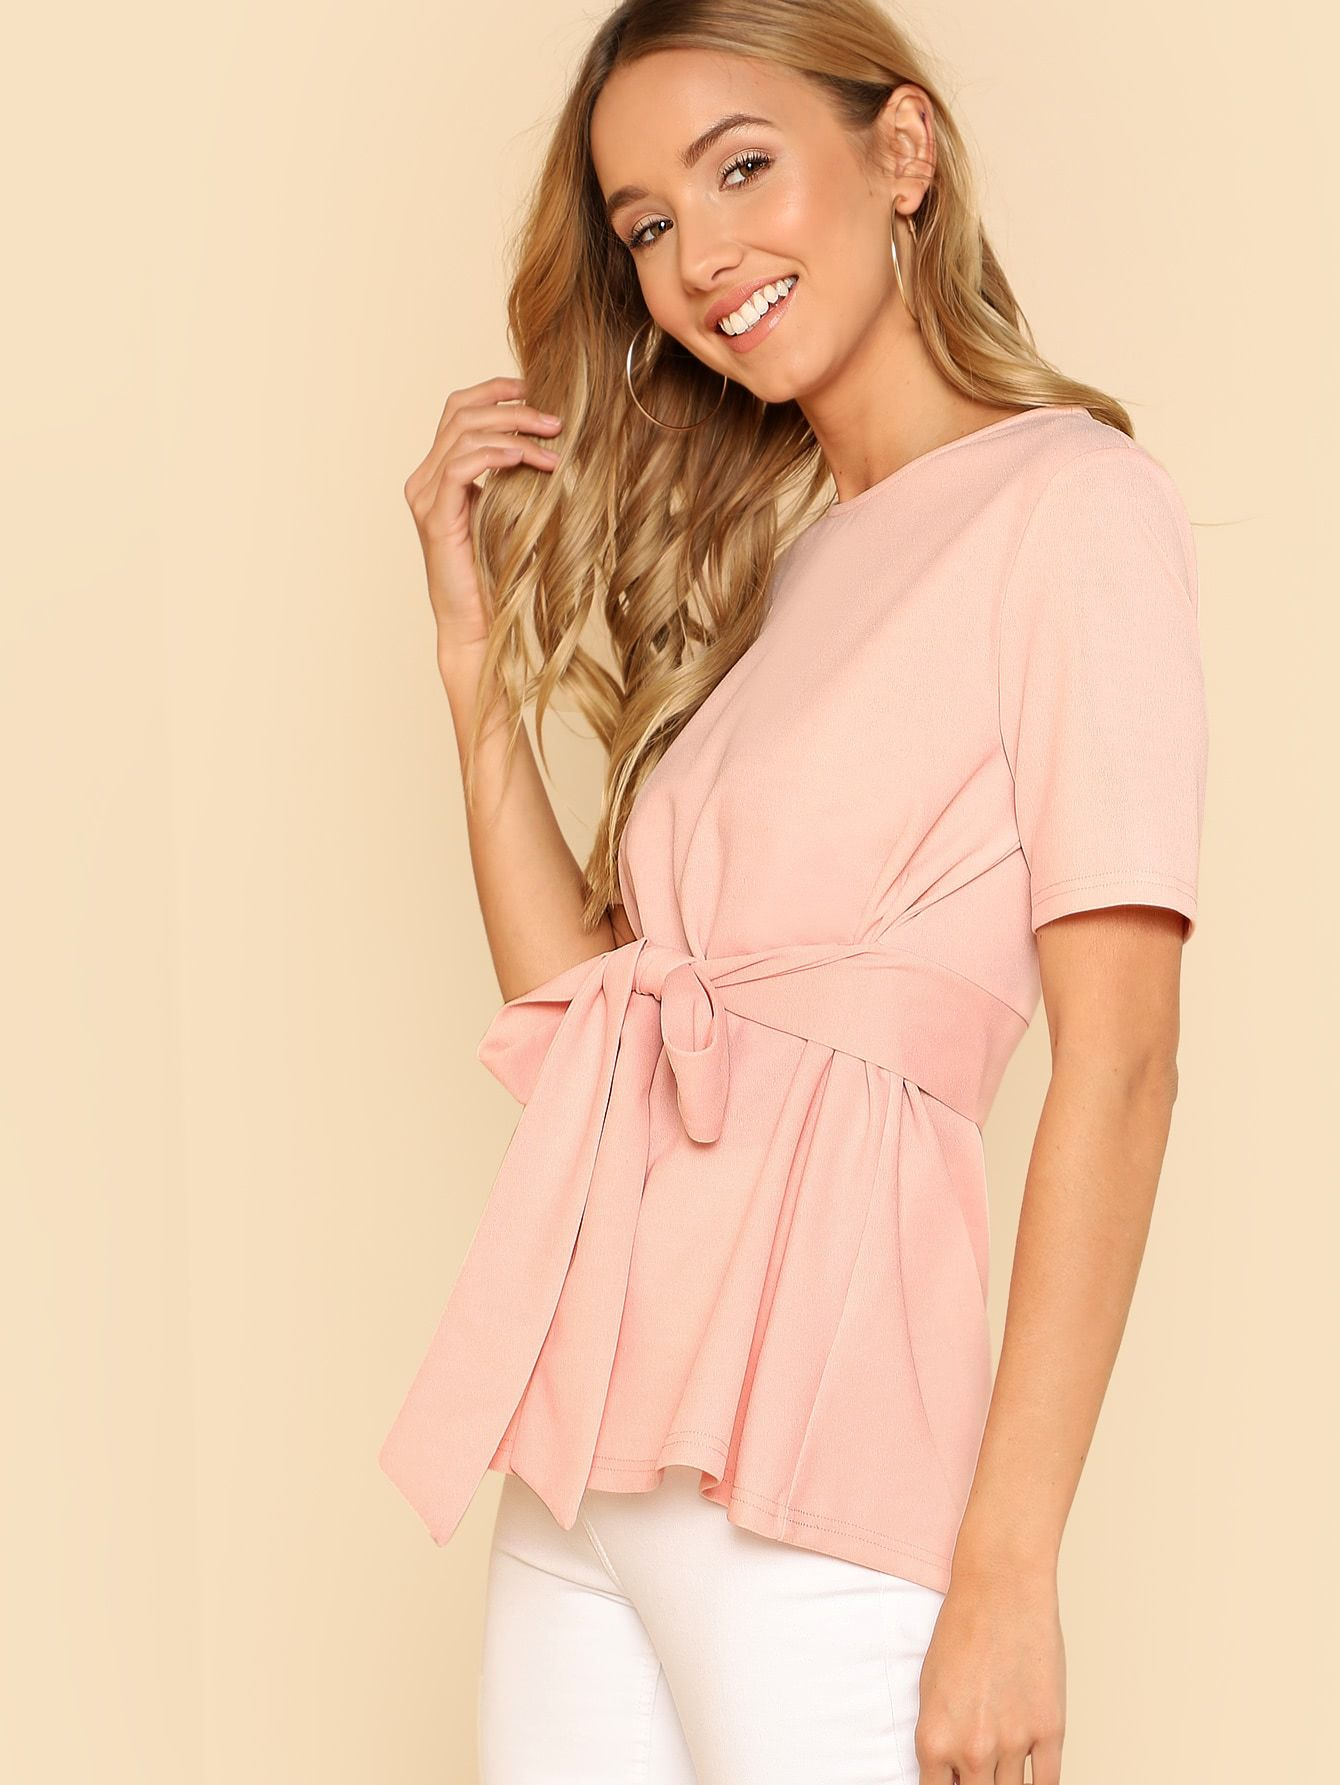 1215d0b120e Elegant Button and Belted Plain Top Regular Fit Round Neck Short Sleeve  Pink and Pastel Self Belt Keyhole Back Solid Top with Belt